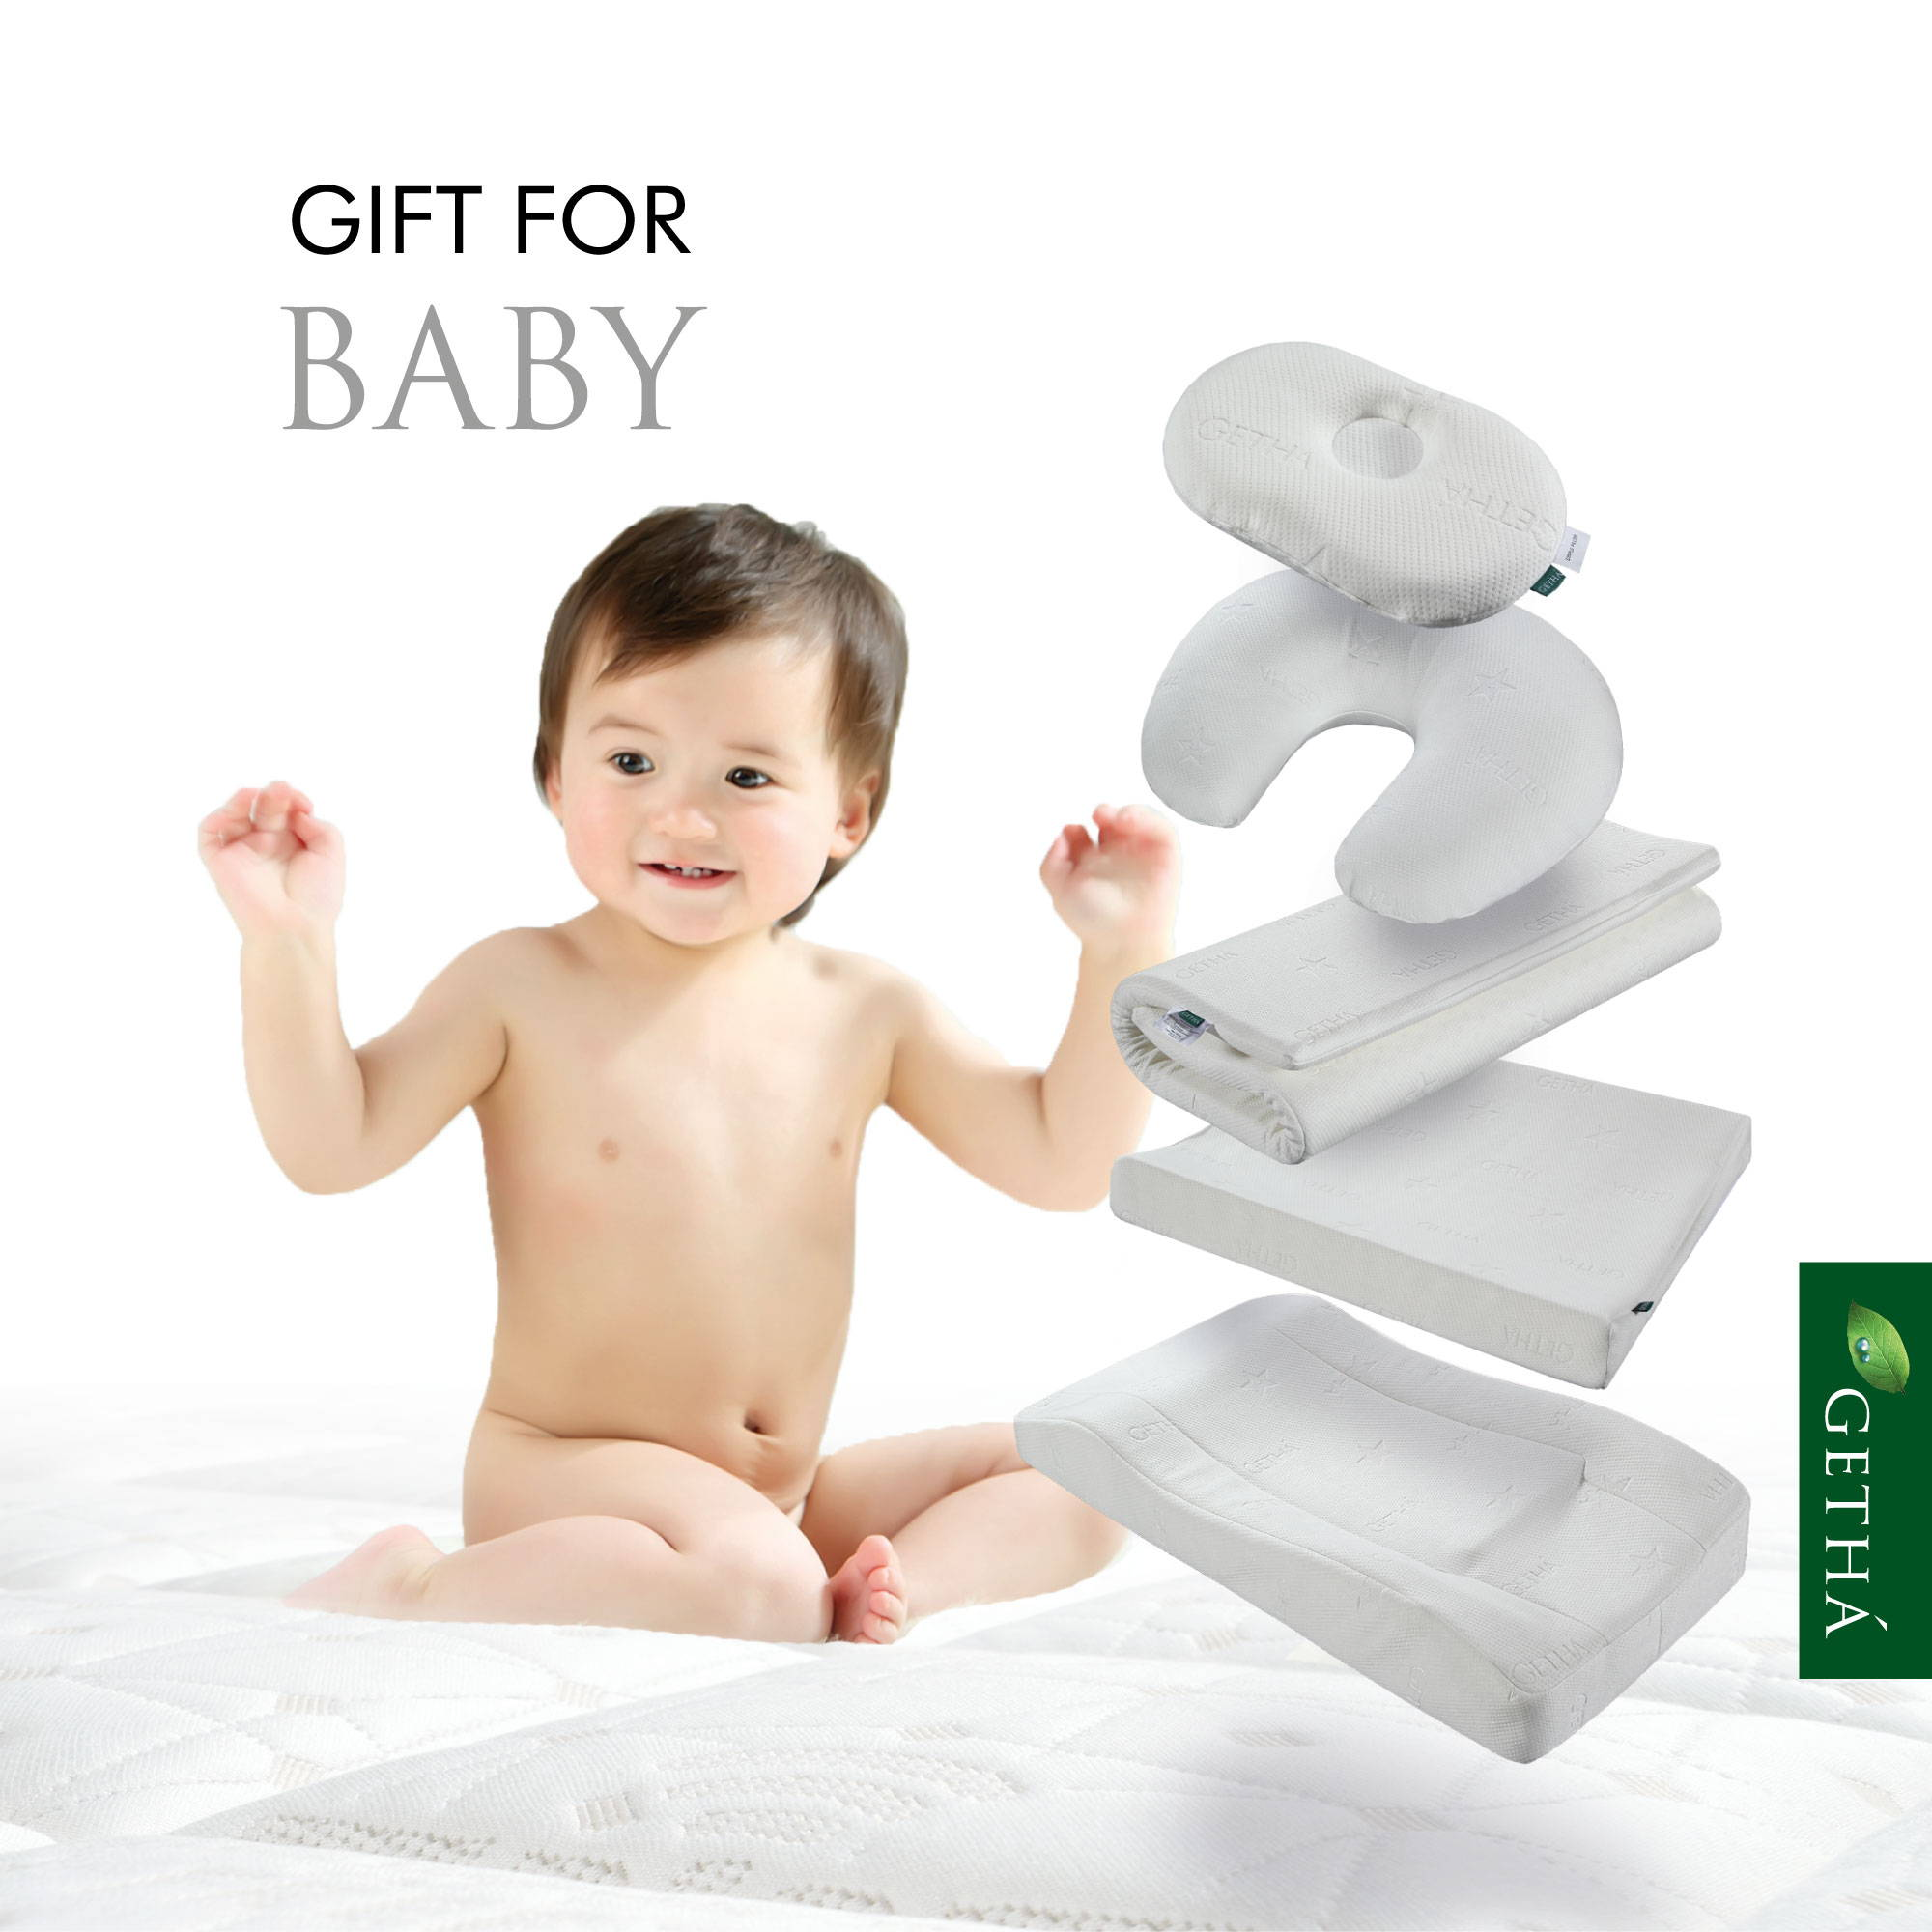 Gifts for Newborn